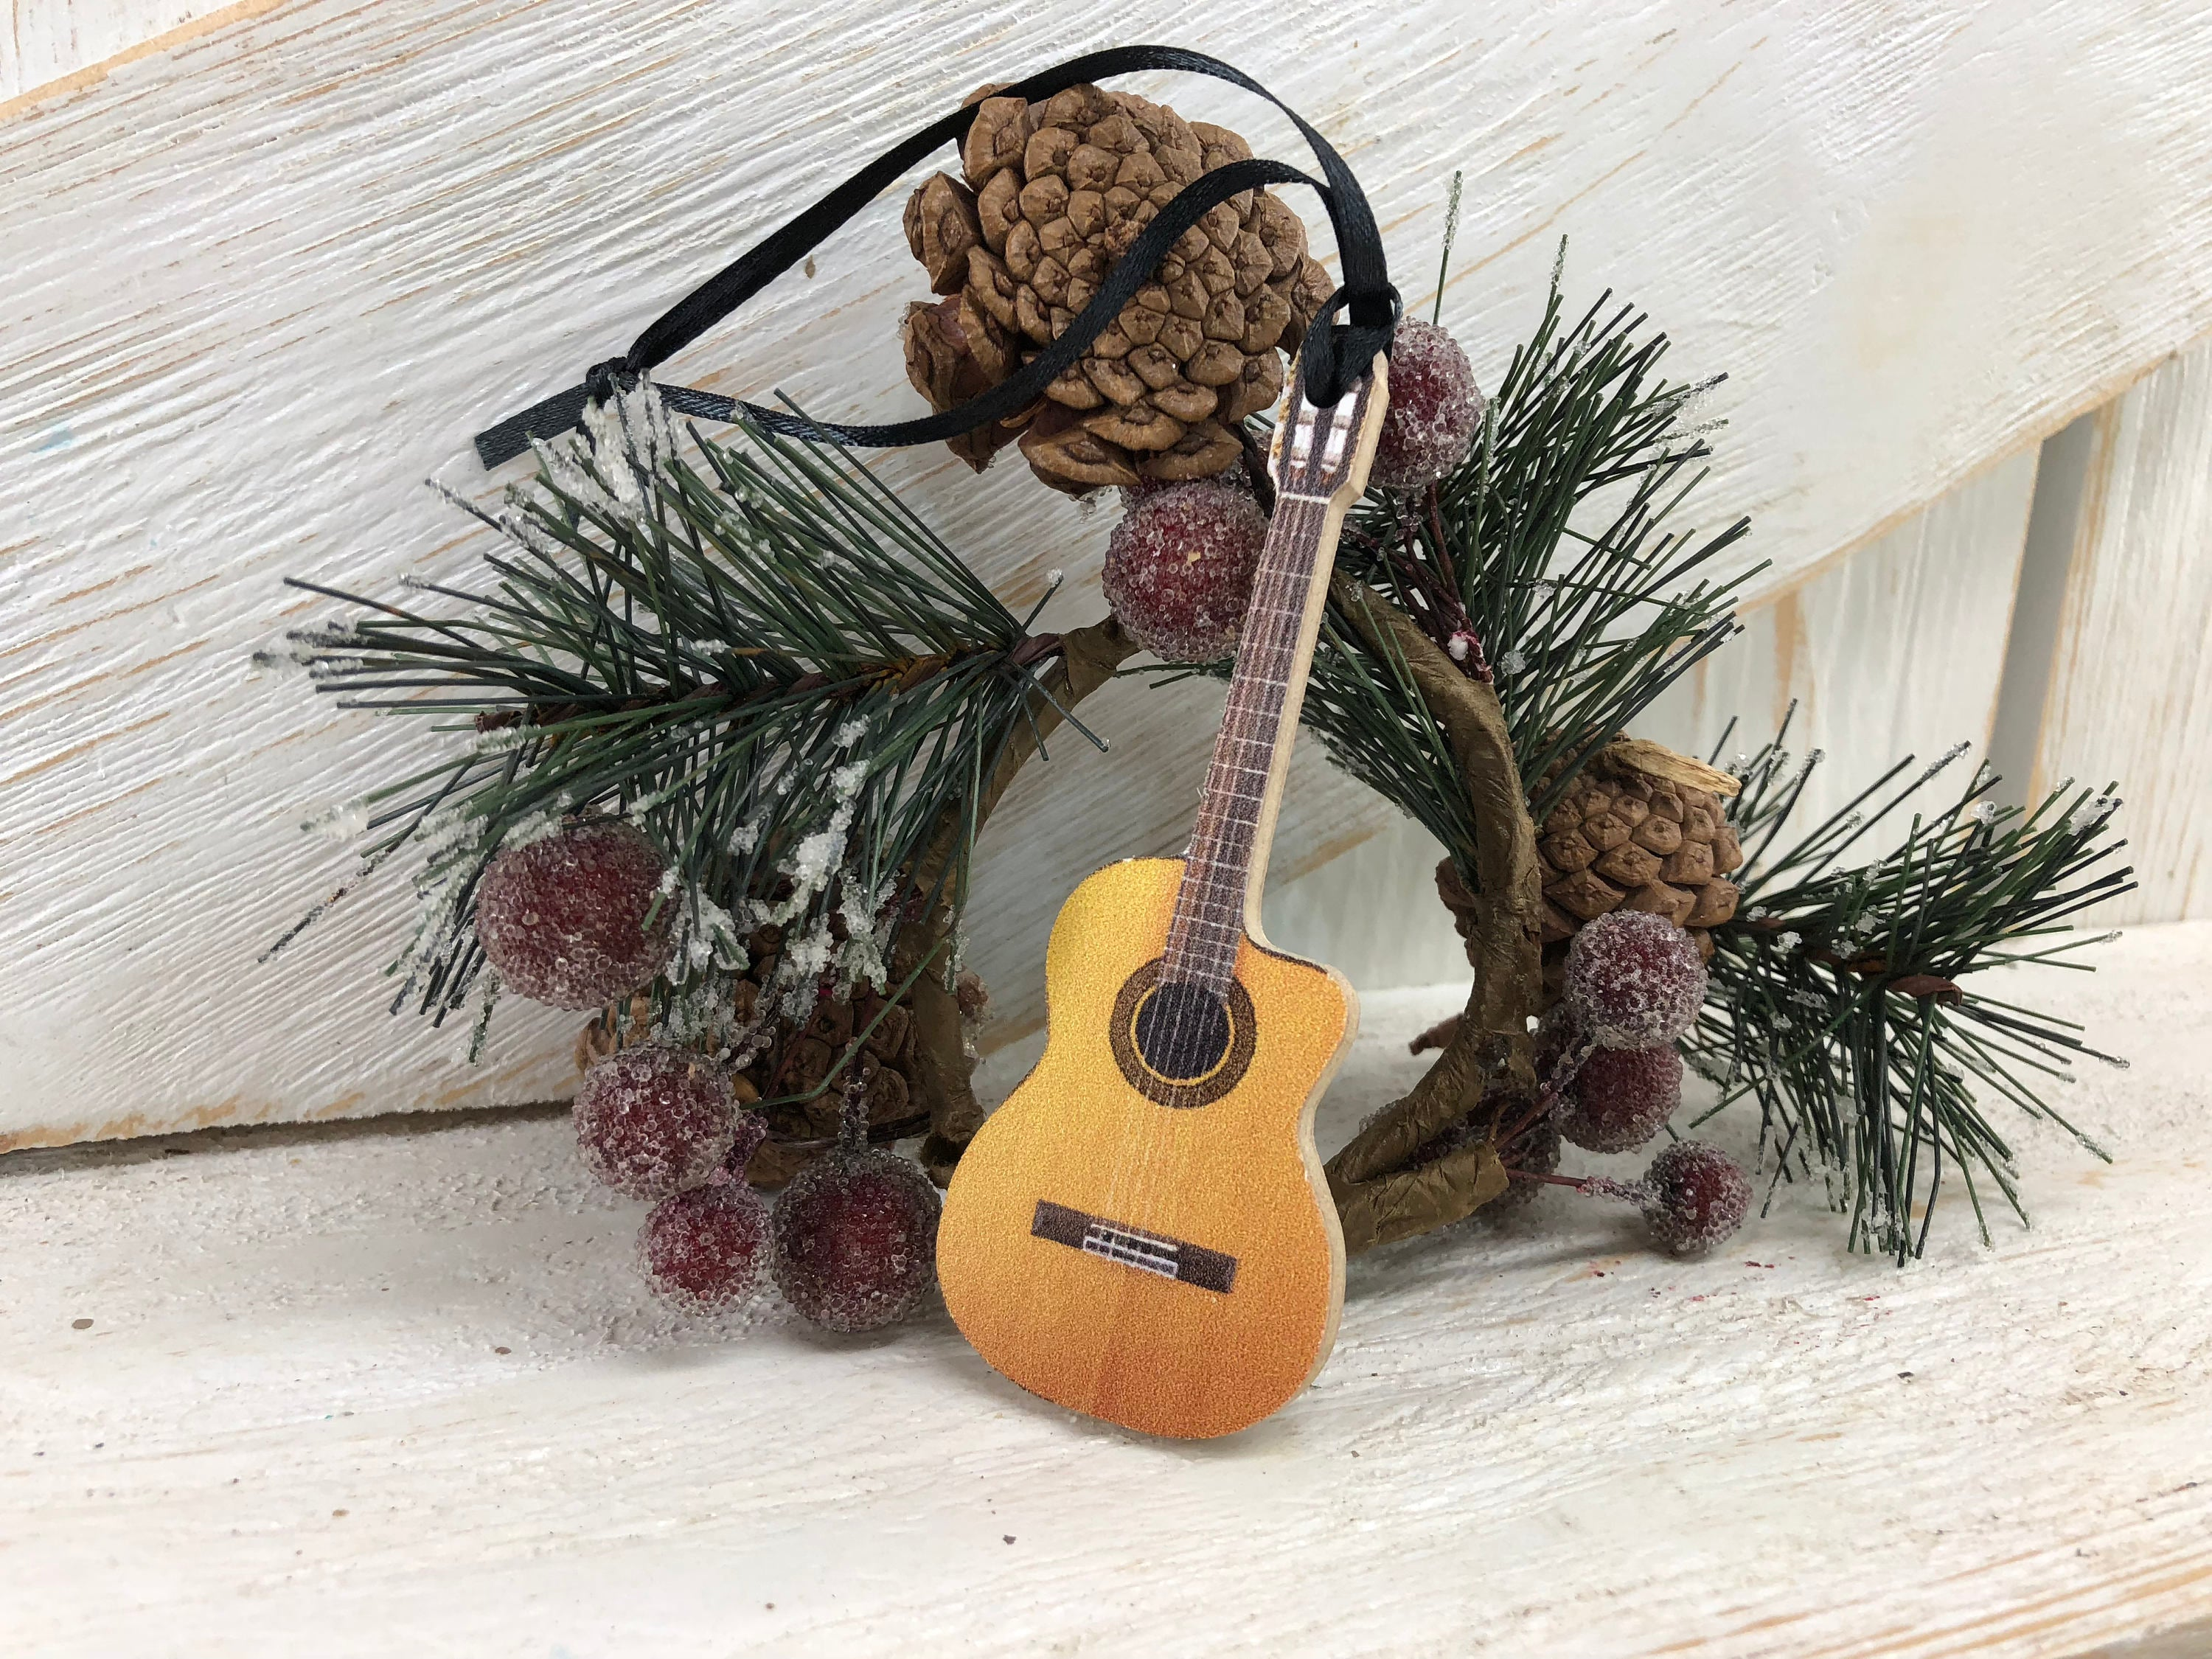 Guitar Musician Christmas Ornament / Piano / Band / musician gift / holiday / tree /